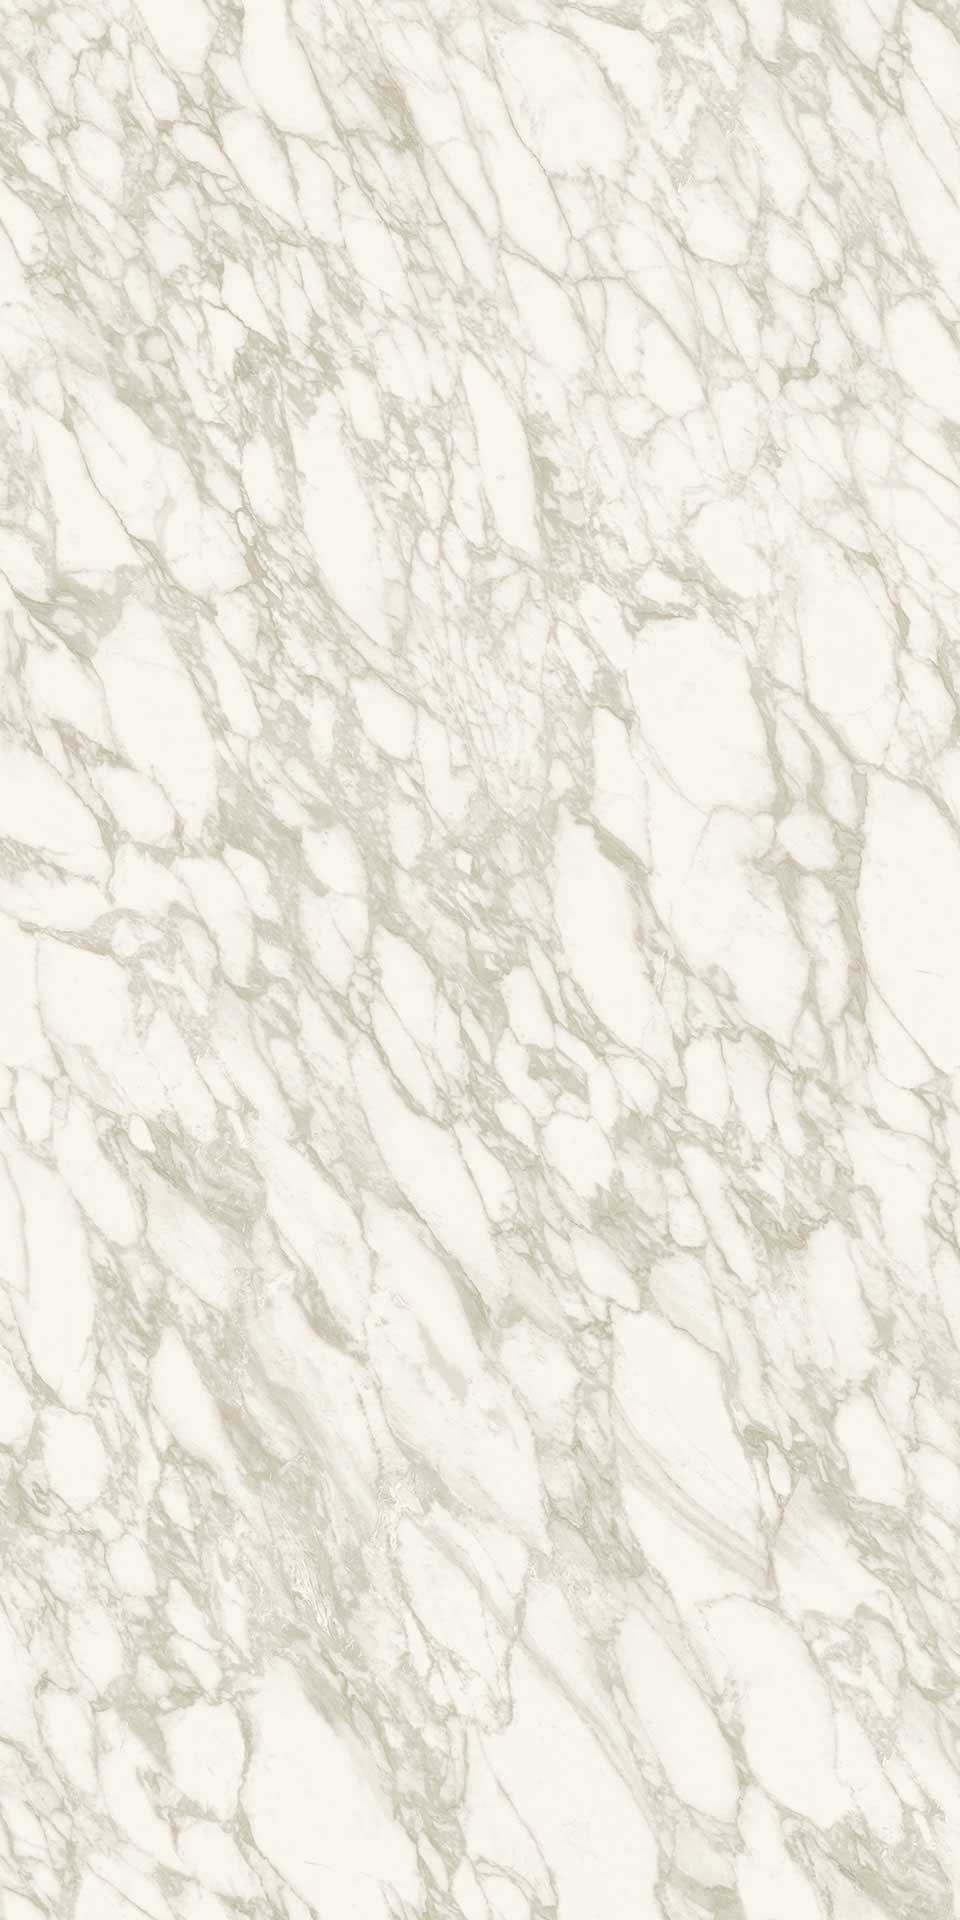 162x324-calacatta-royal-marble-look-tile-atlas-plan